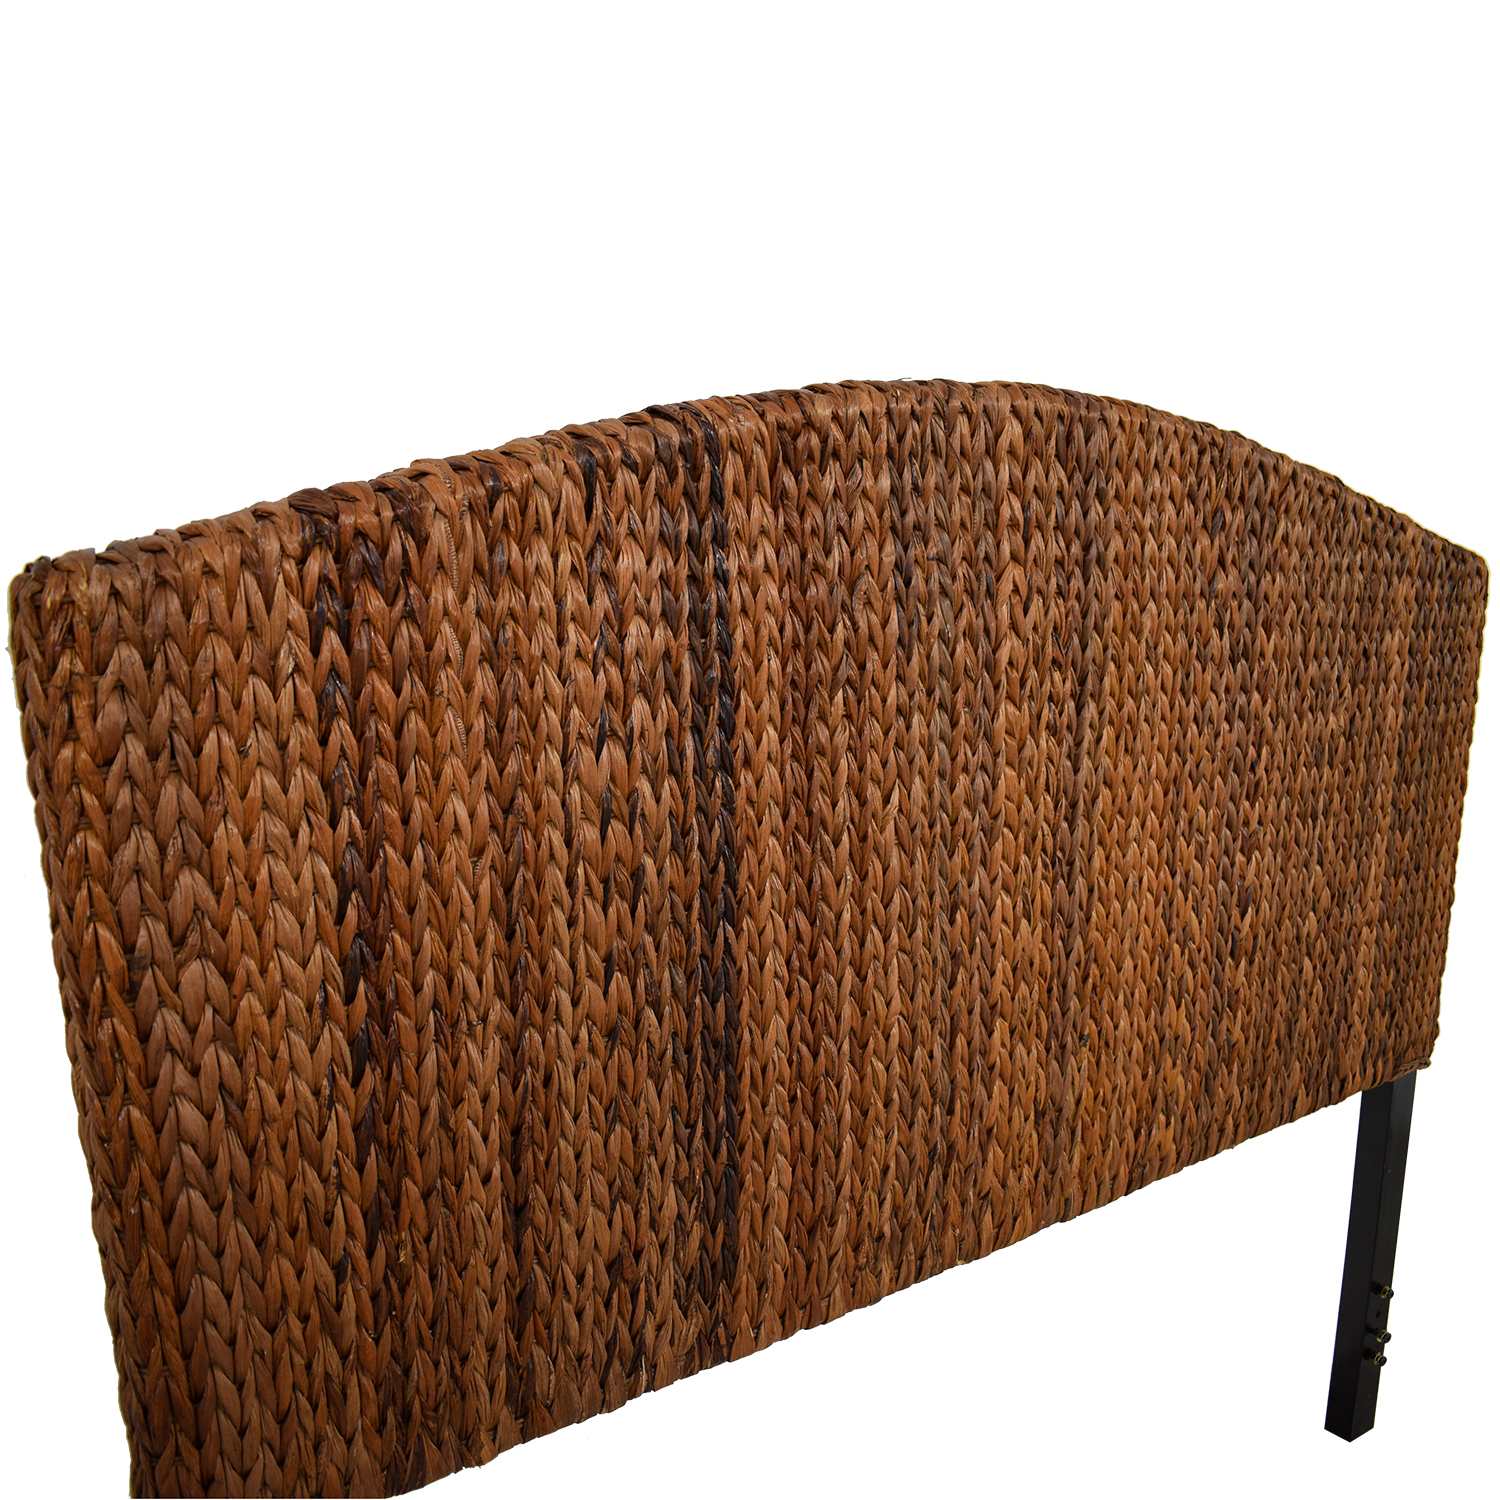 Espresso Banana Leaf Woven Queen Headboard second hand